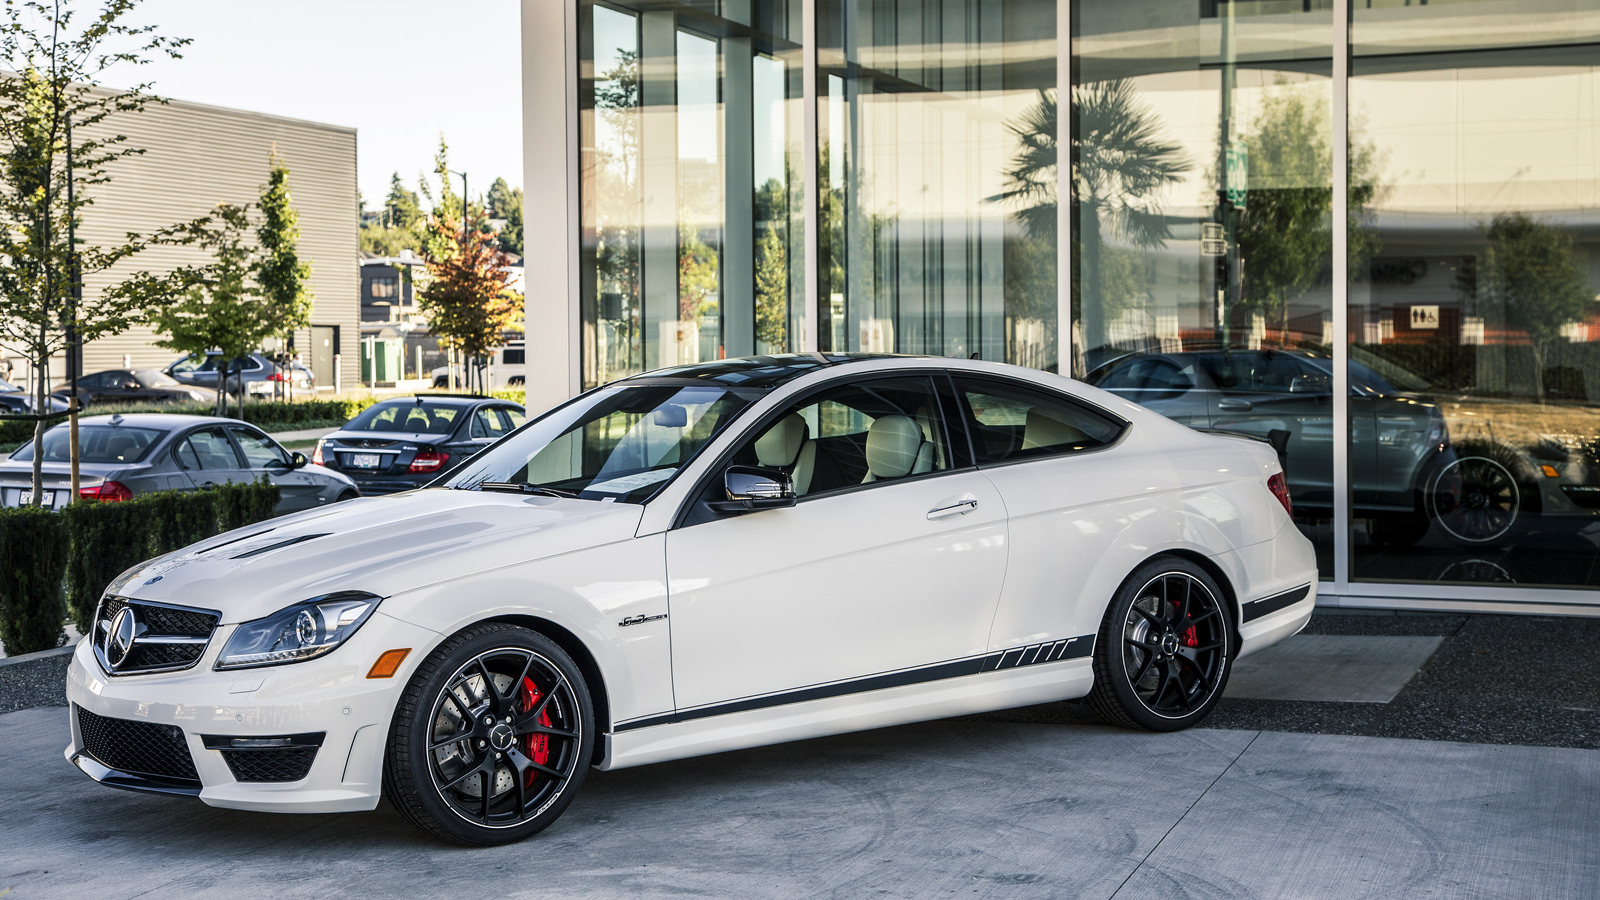 Mercedes benz c63 amg w204 review buyers guide for Common problems with mercedes benz c class